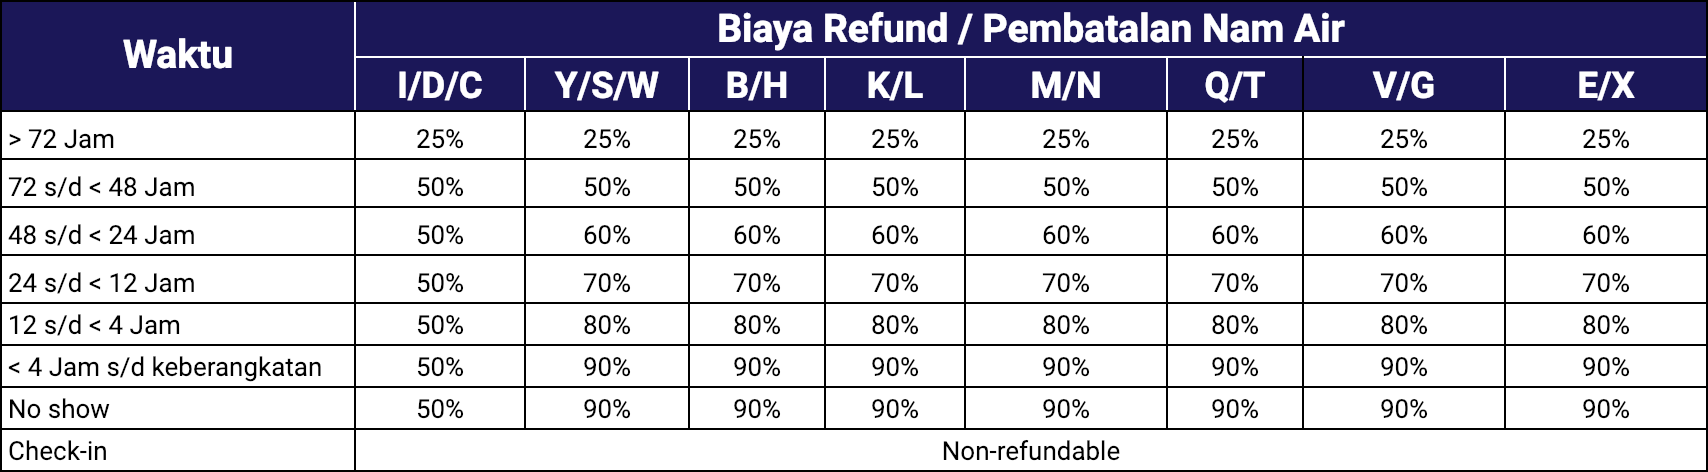 ketentuan refund nam air